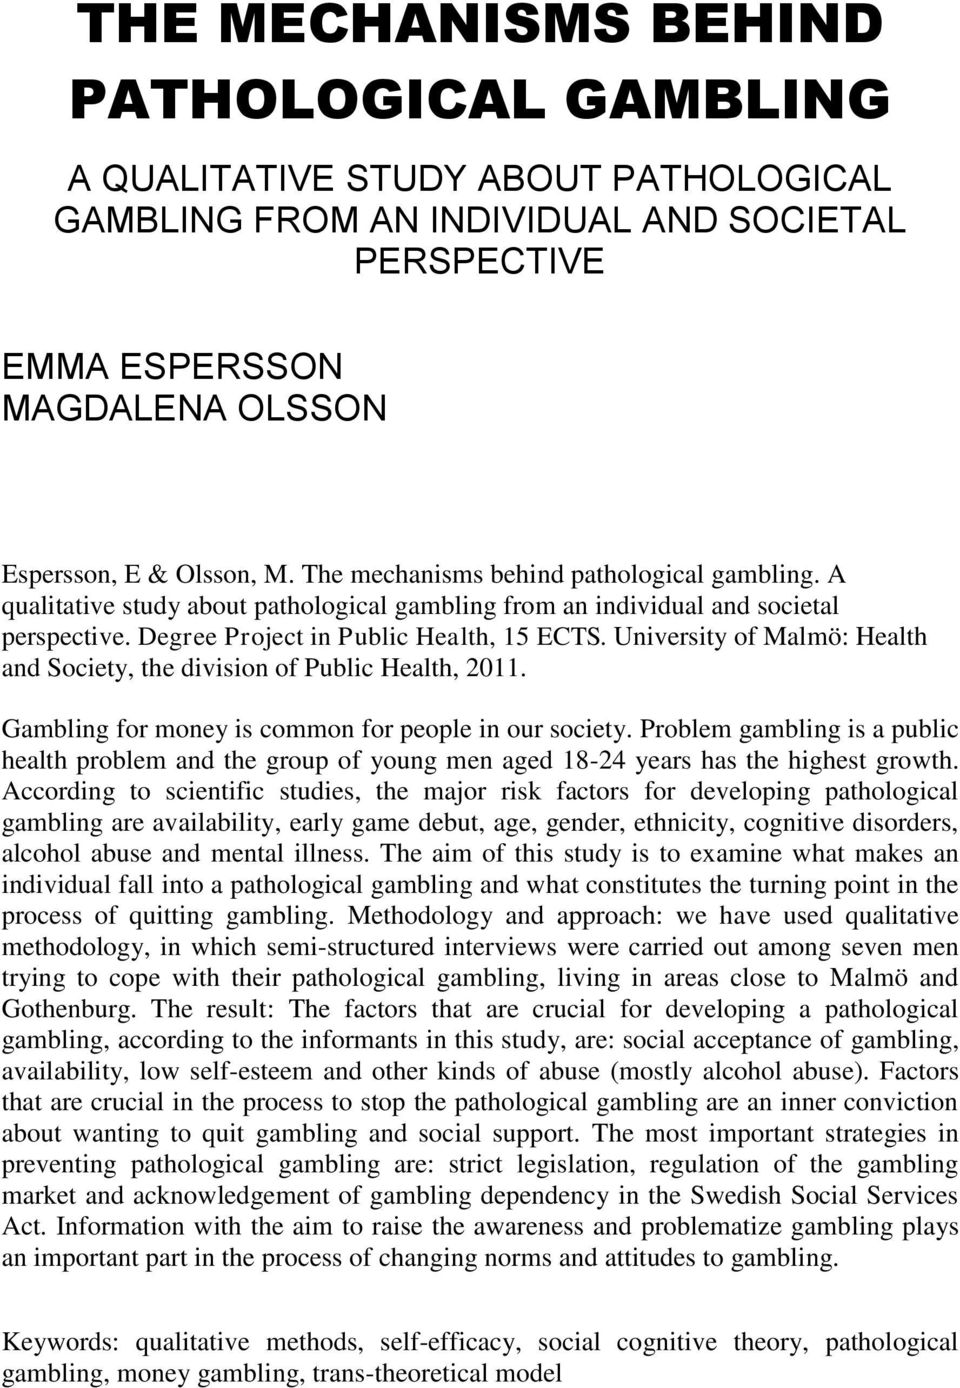 University of Malmö: Health and Society, the division of Public Health, 2011. Gambling for money is common for people in our society.